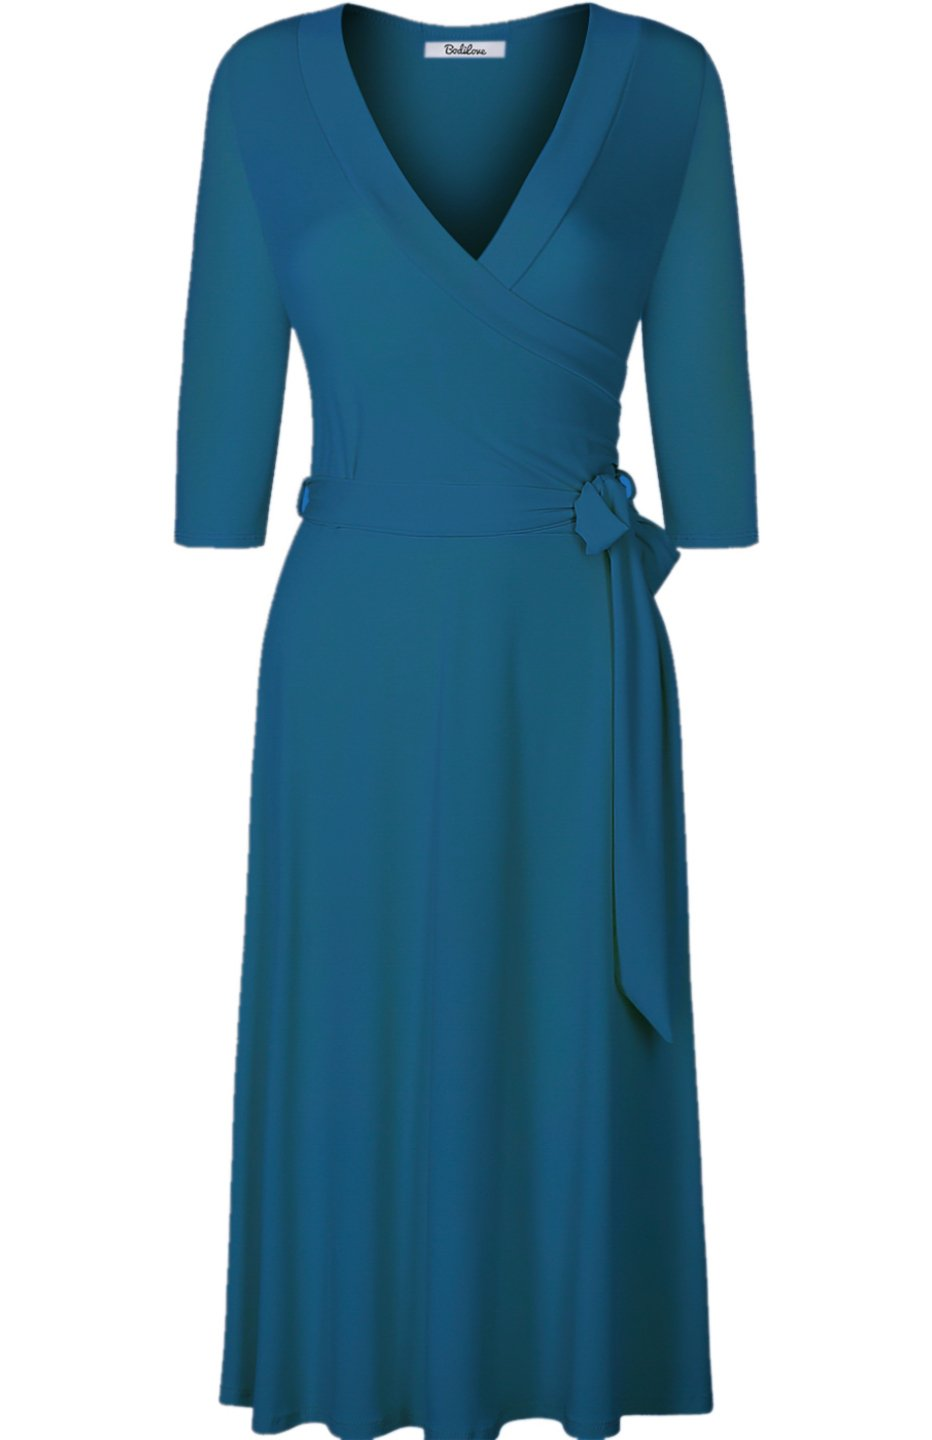 Available at Amazon: BodiLove Women's 3/4 Sleeve V-Neck Solid Knee Length Wrap Dress